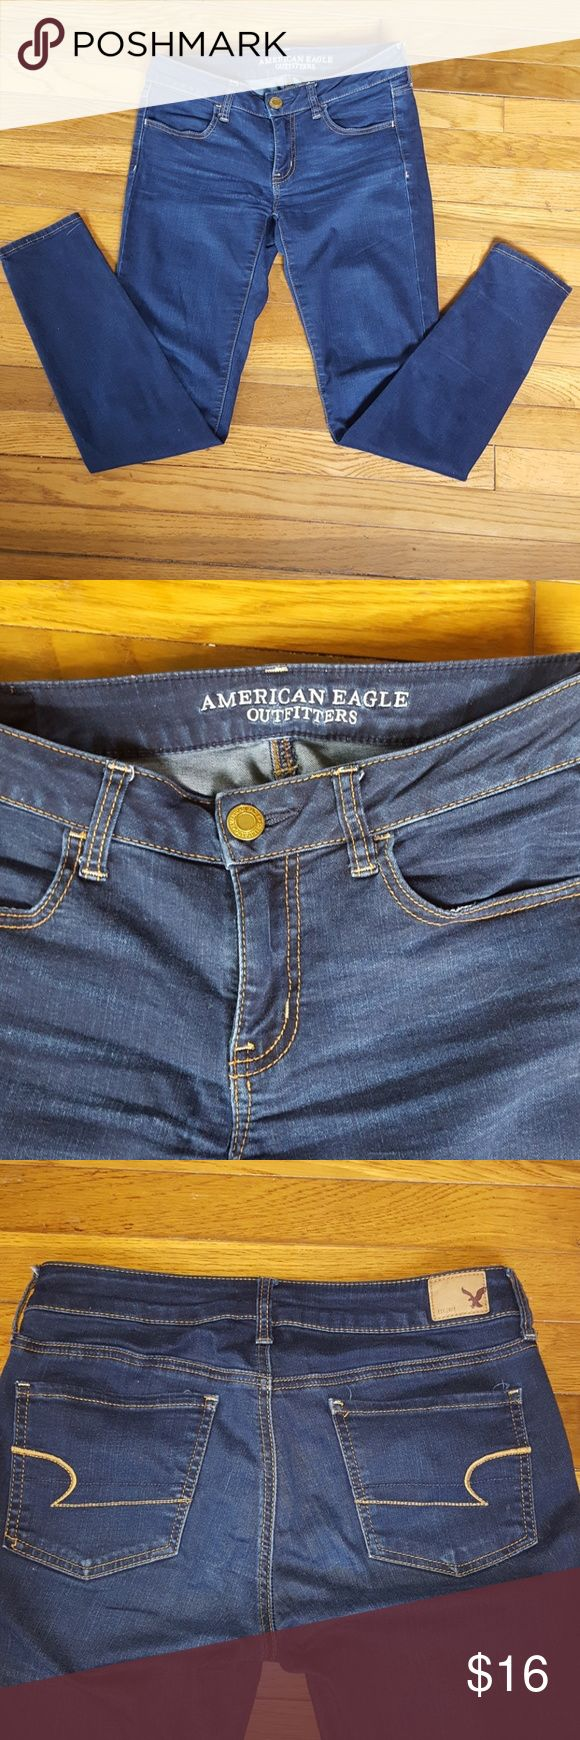 American Eagle Jegging Super Stretch Jeans size 6 Super stretchy American Eagle skinny jeans. Inseam measures 30 inches American Eagle Outfitters Jeans Skinny